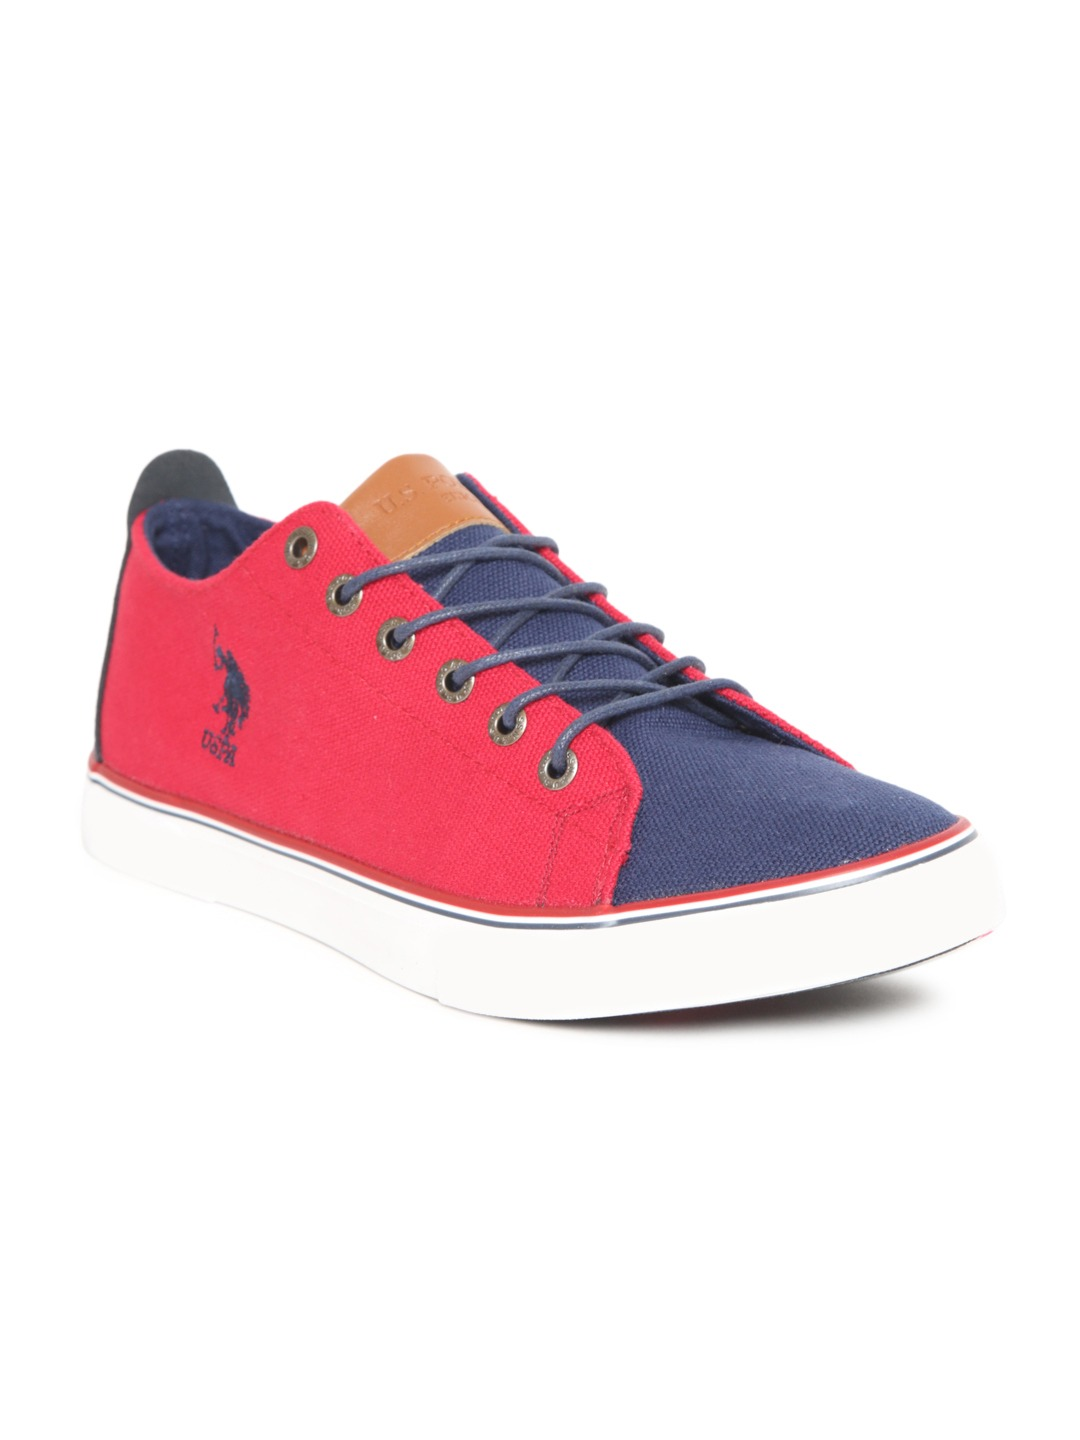 Red & Navy Colourblocked Sneakers